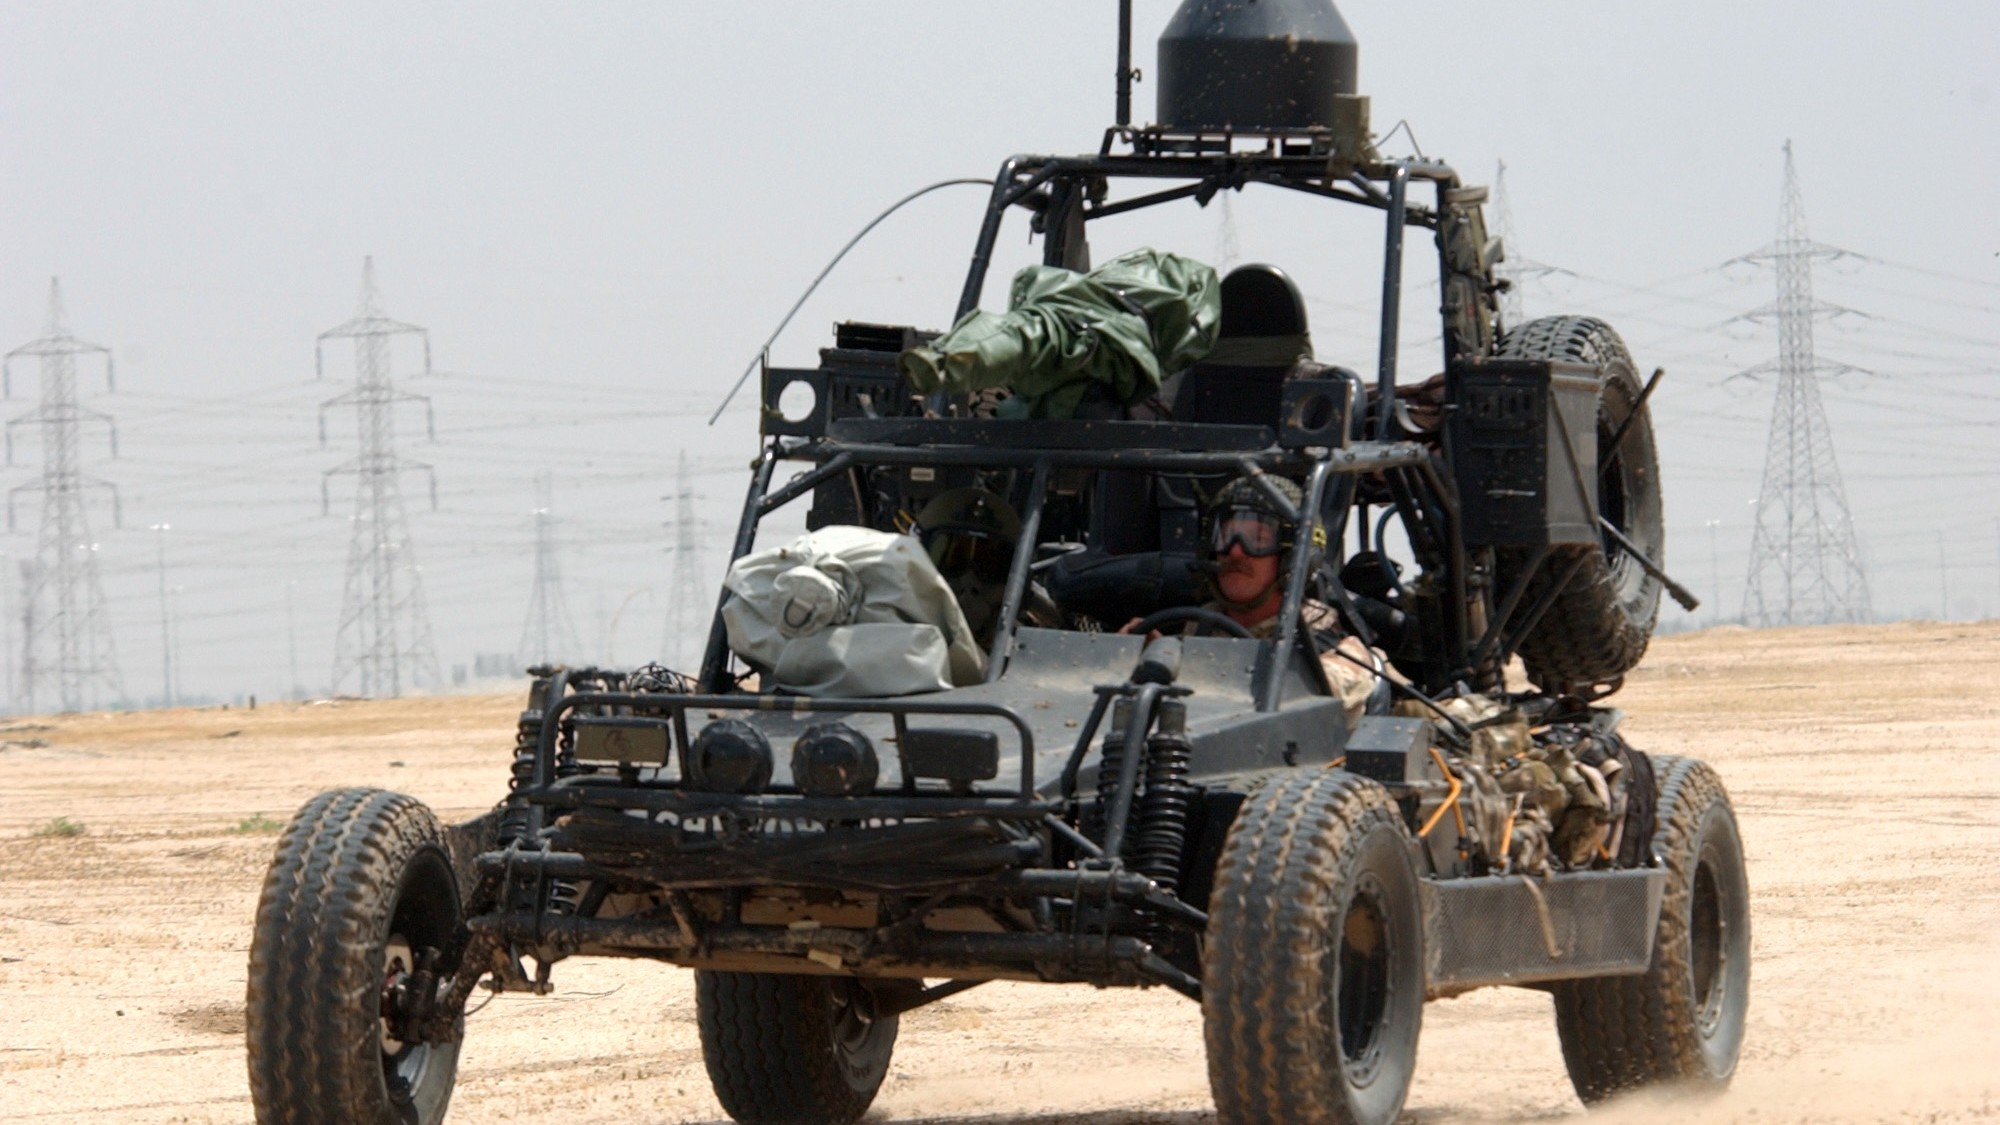 Hybrid Land Vehicles Are the Future of Special Forces Operations